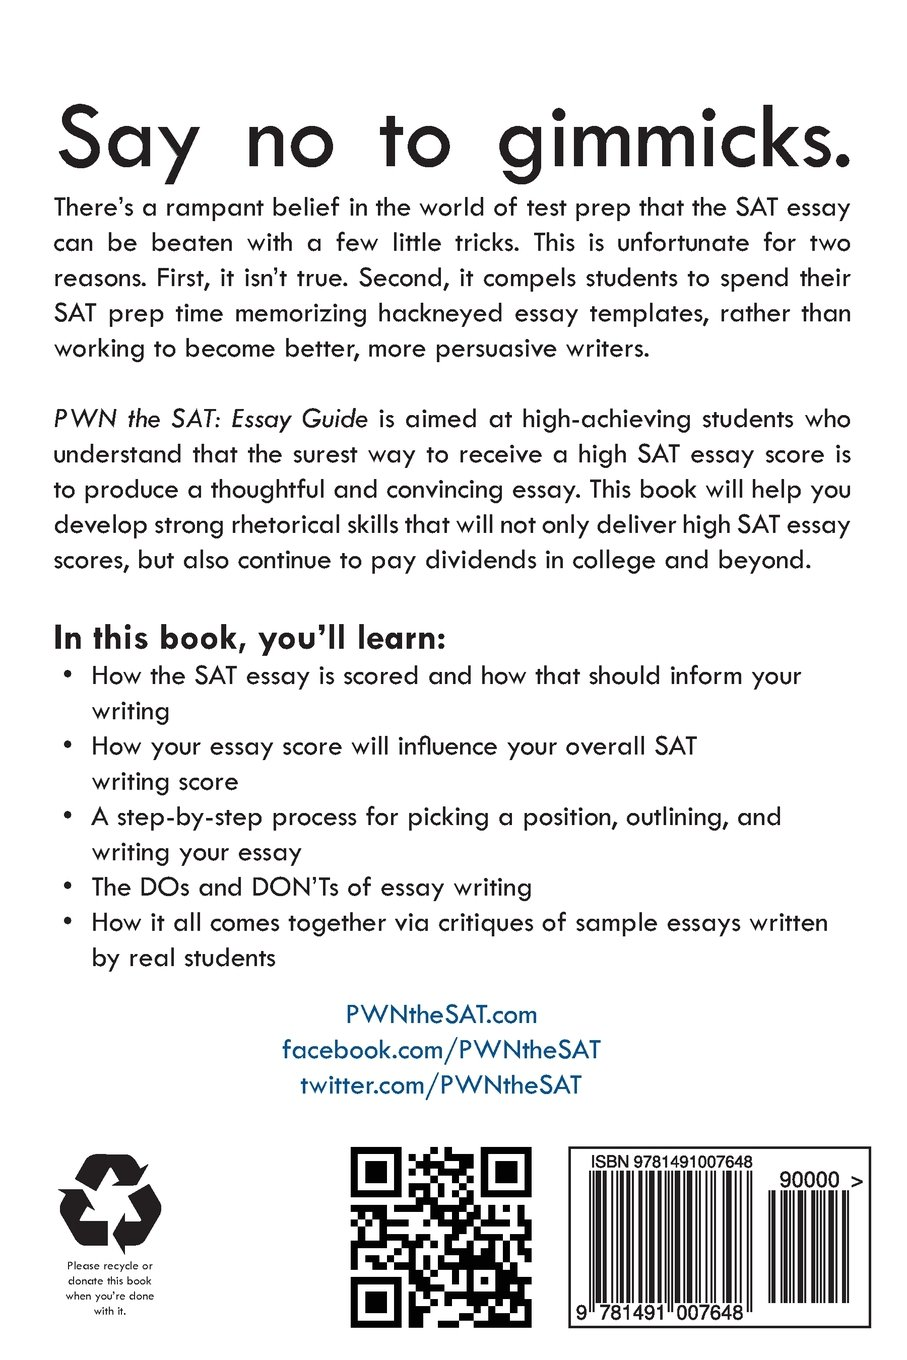 pwn the sat essay guide mike mcclenathan  pwn the sat essay guide mike mcclenathan 9781491007648 com books